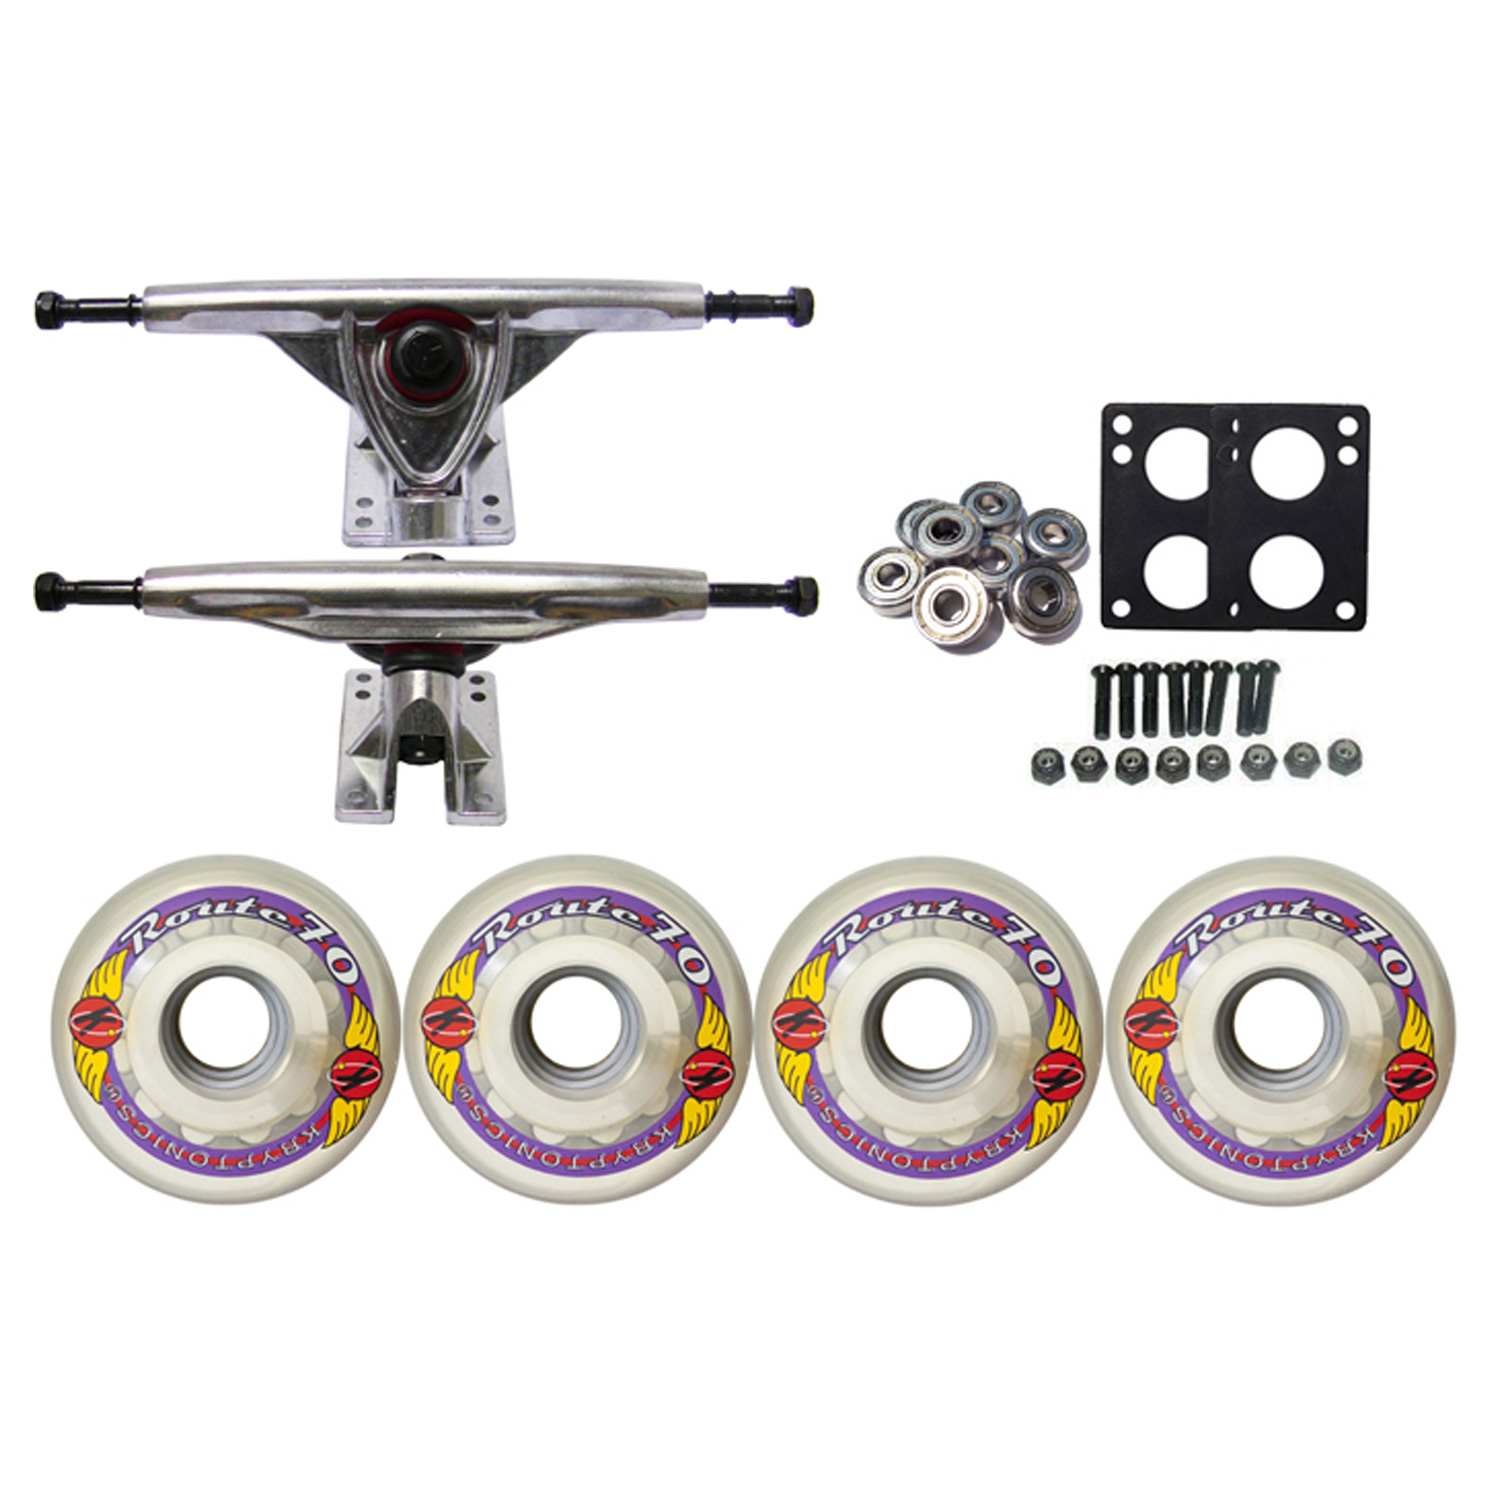 KRYPTONICS ROUTE Truck Wheel Pack 70mm CLEAR 180mm Raw